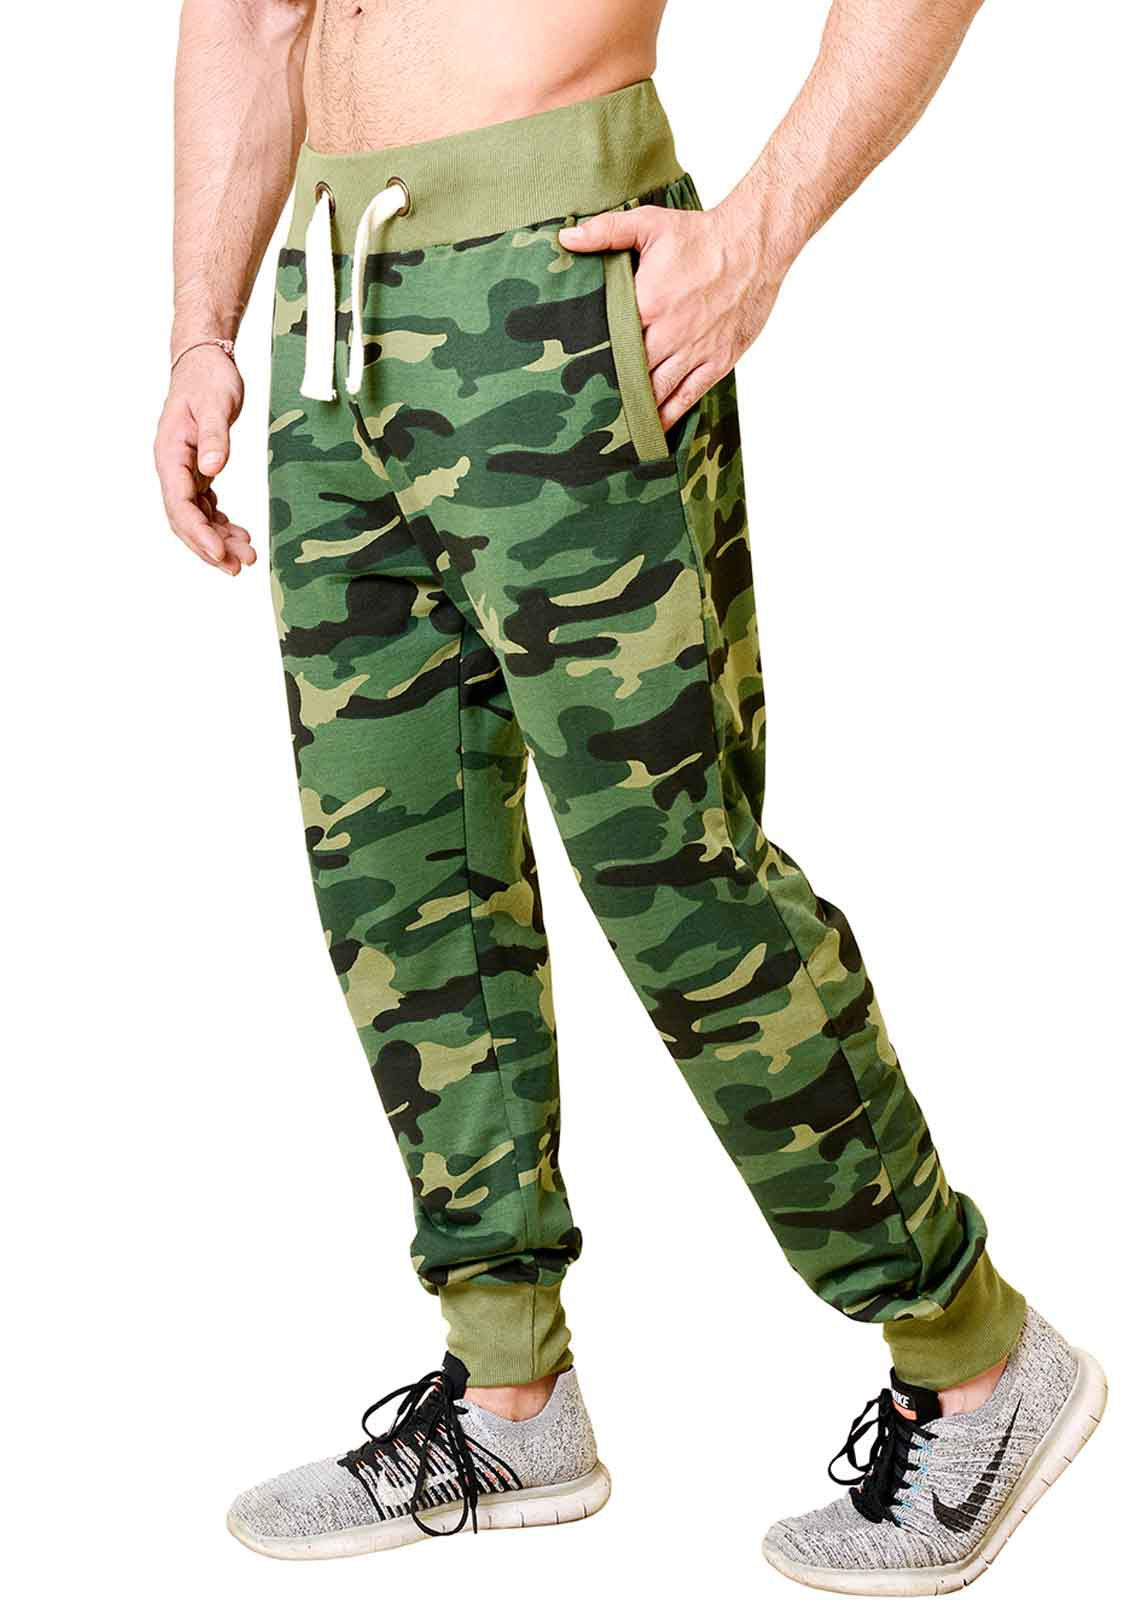 37665ec61ae5 Shop Mens Army Camouflage Track Pants - Joggers Collection - Wear ...